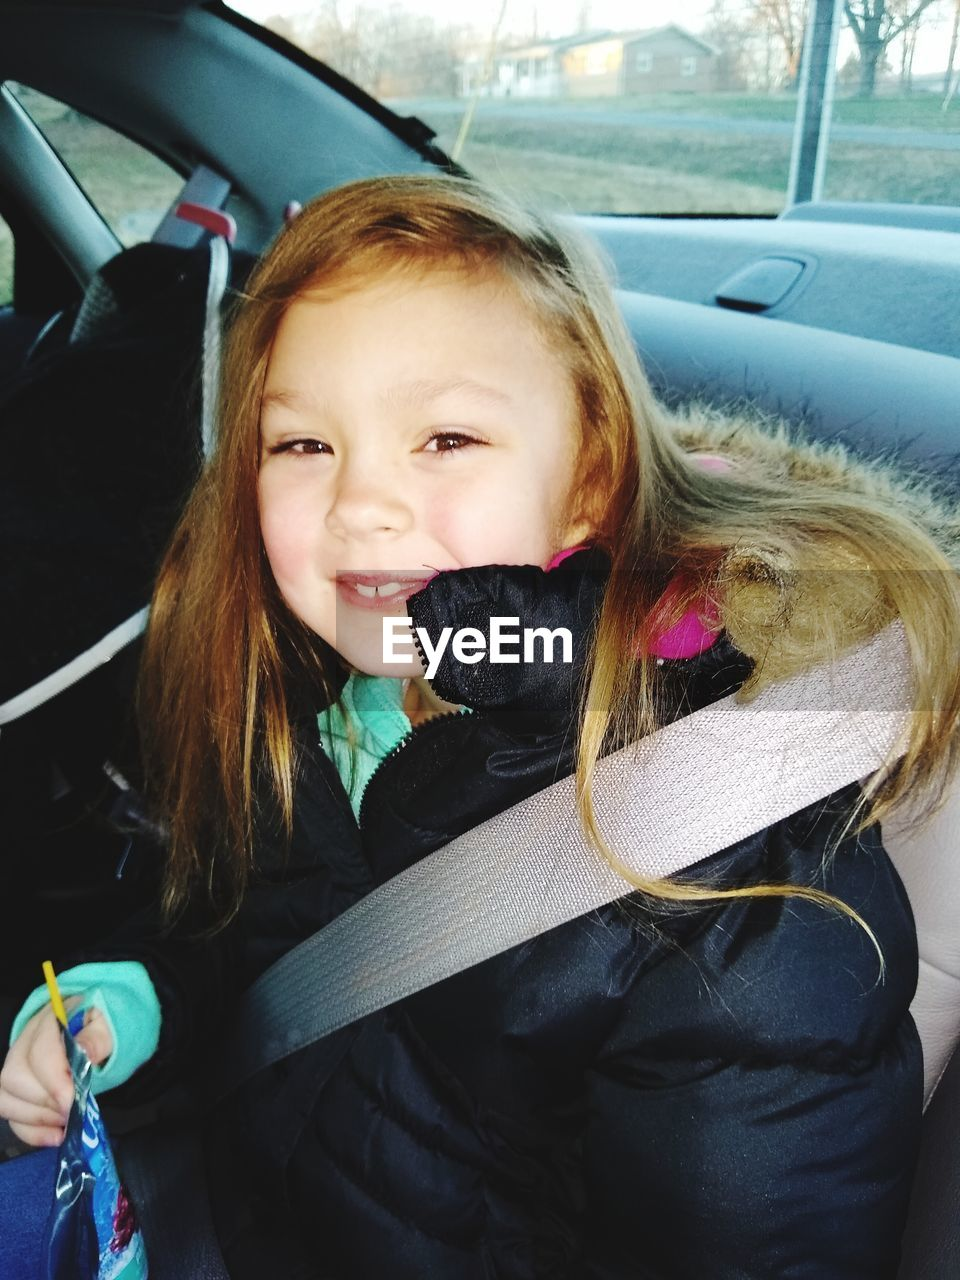 vehicle interior, mode of transportation, transportation, car, motor vehicle, portrait, real people, car interior, land vehicle, childhood, child, females, one person, looking at camera, clothing, seat belt, smiling, women, cute, innocence, warm clothing, road trip, hairstyle